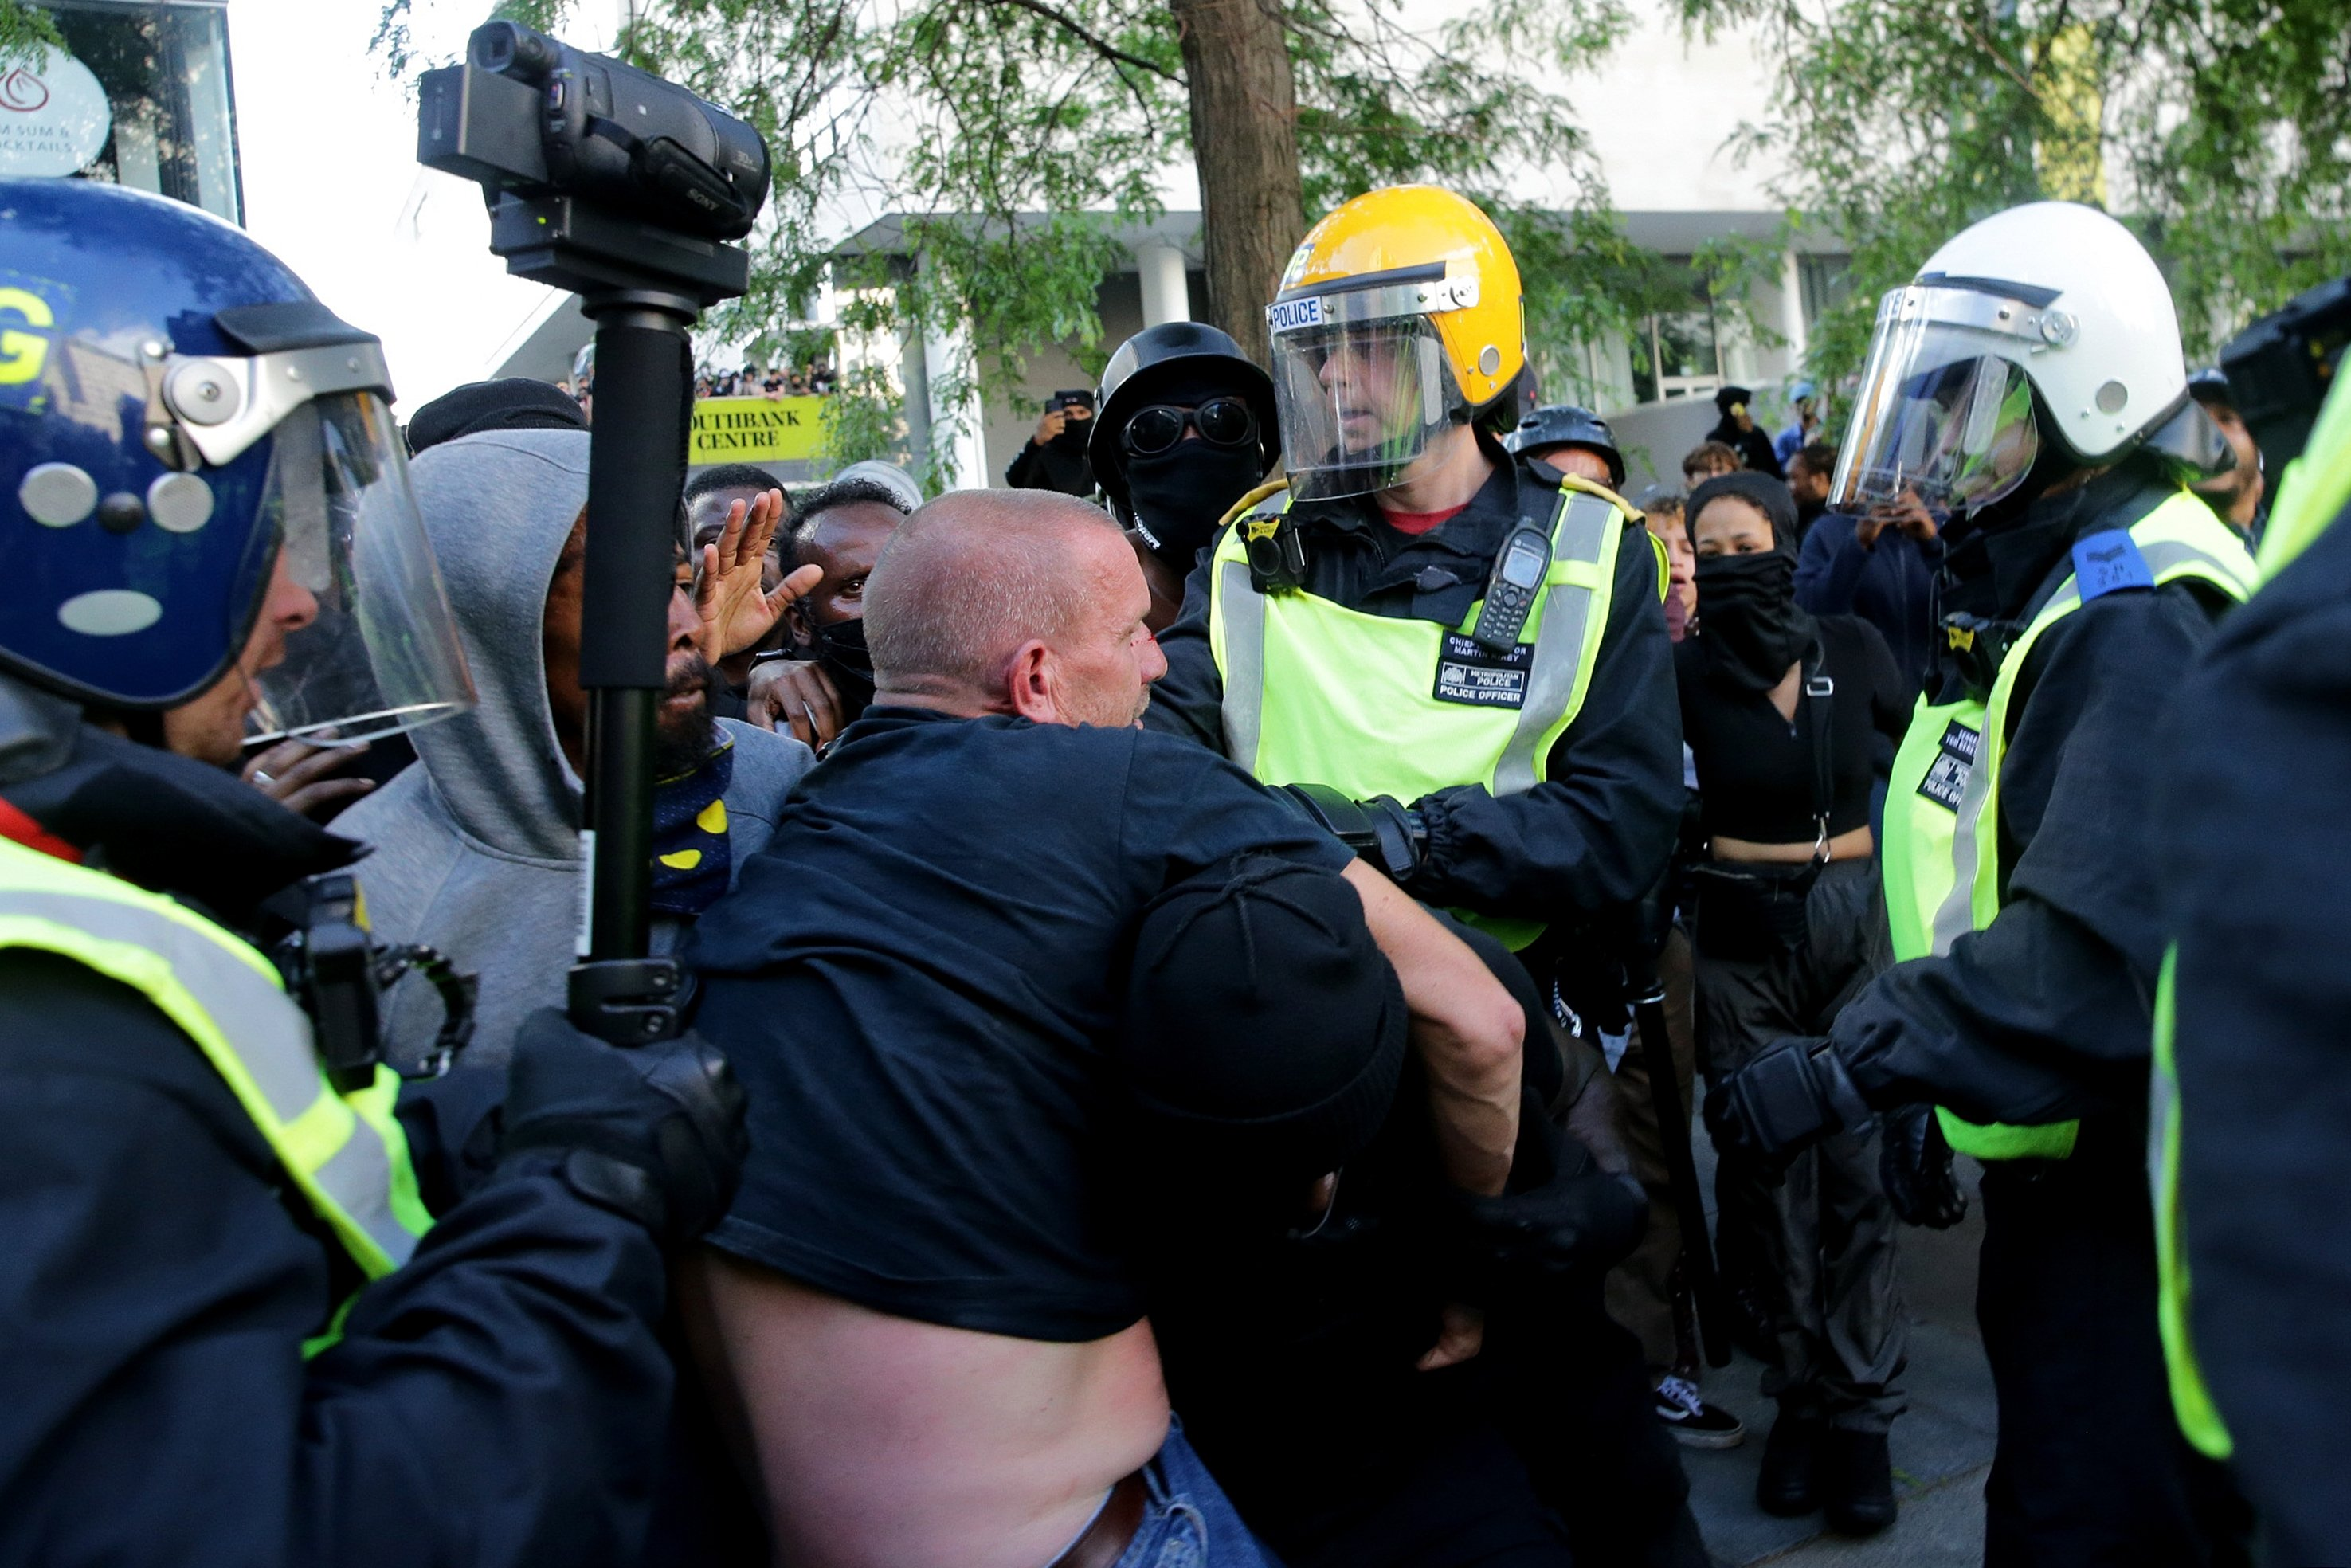 A group of men carry an injured man away after he was allegedly attacked by some of the crowd of protesters, as police try to intervene on the Southbank near Waterloo station in London on June 13, 2020.